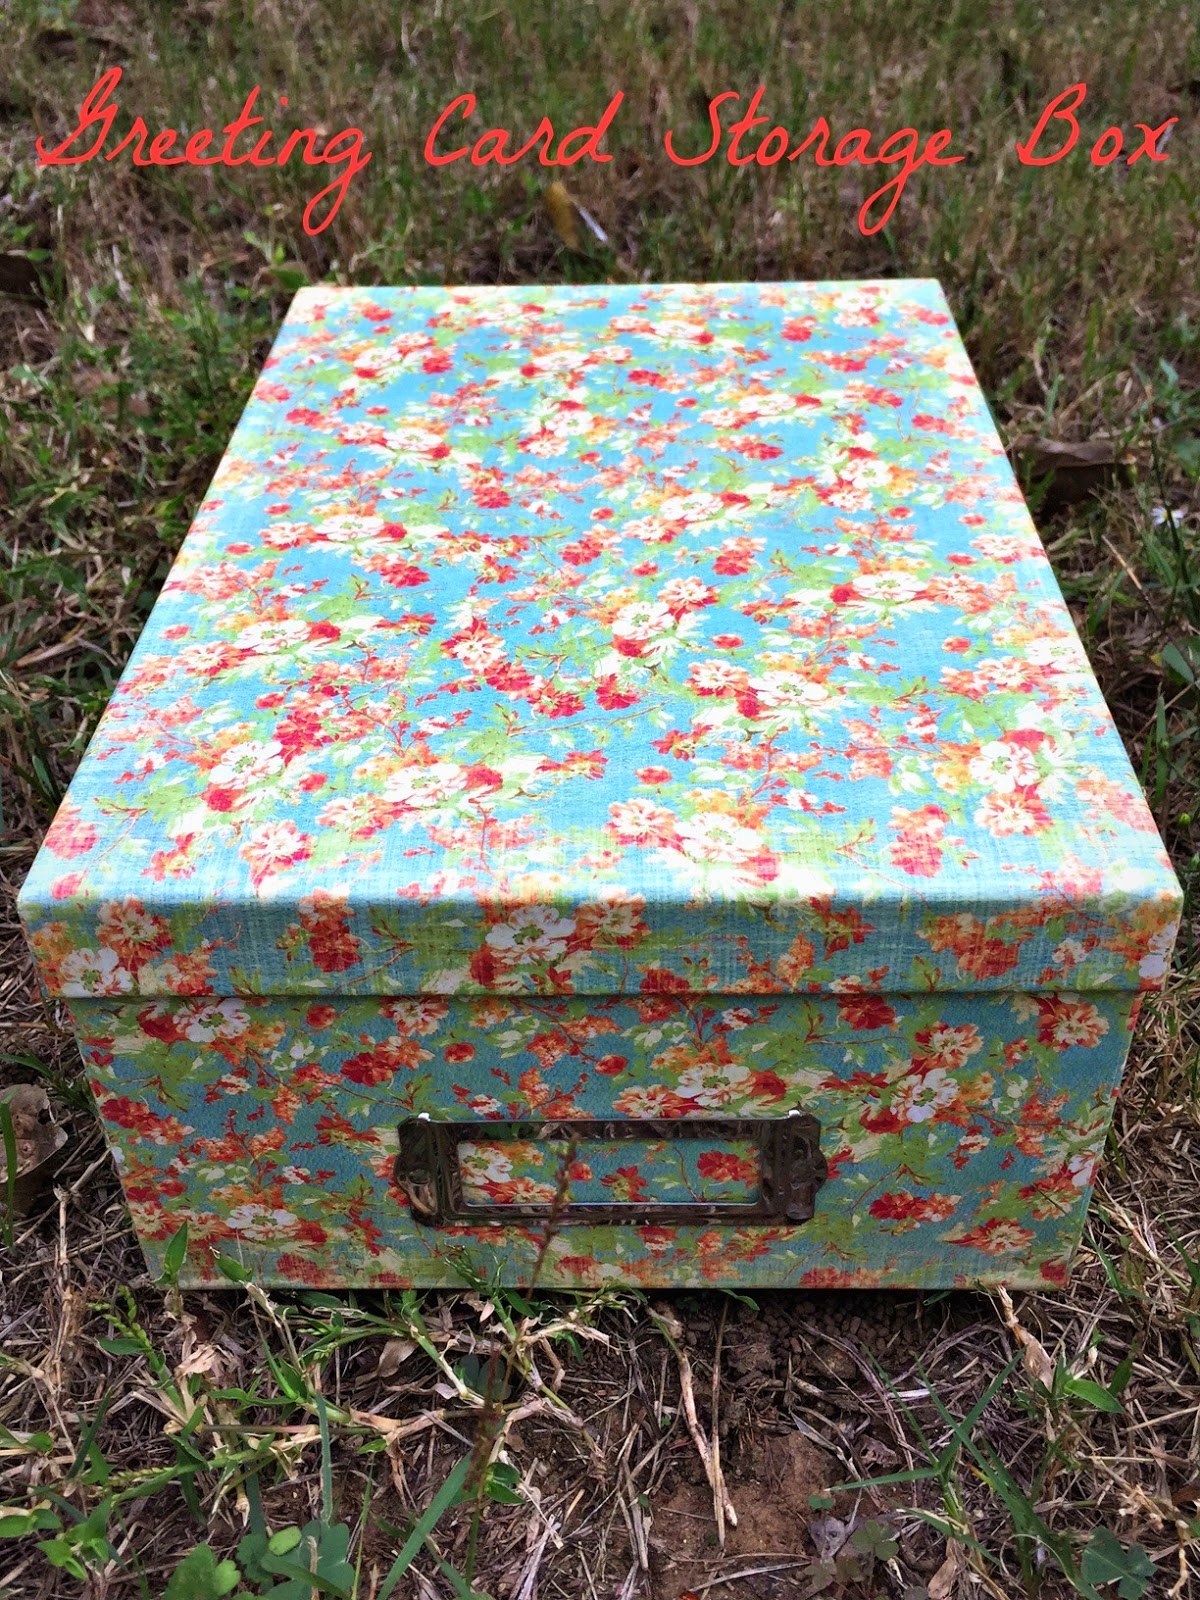 Being Mrs Olson Card Storage Box Organize Your Greeting Cards